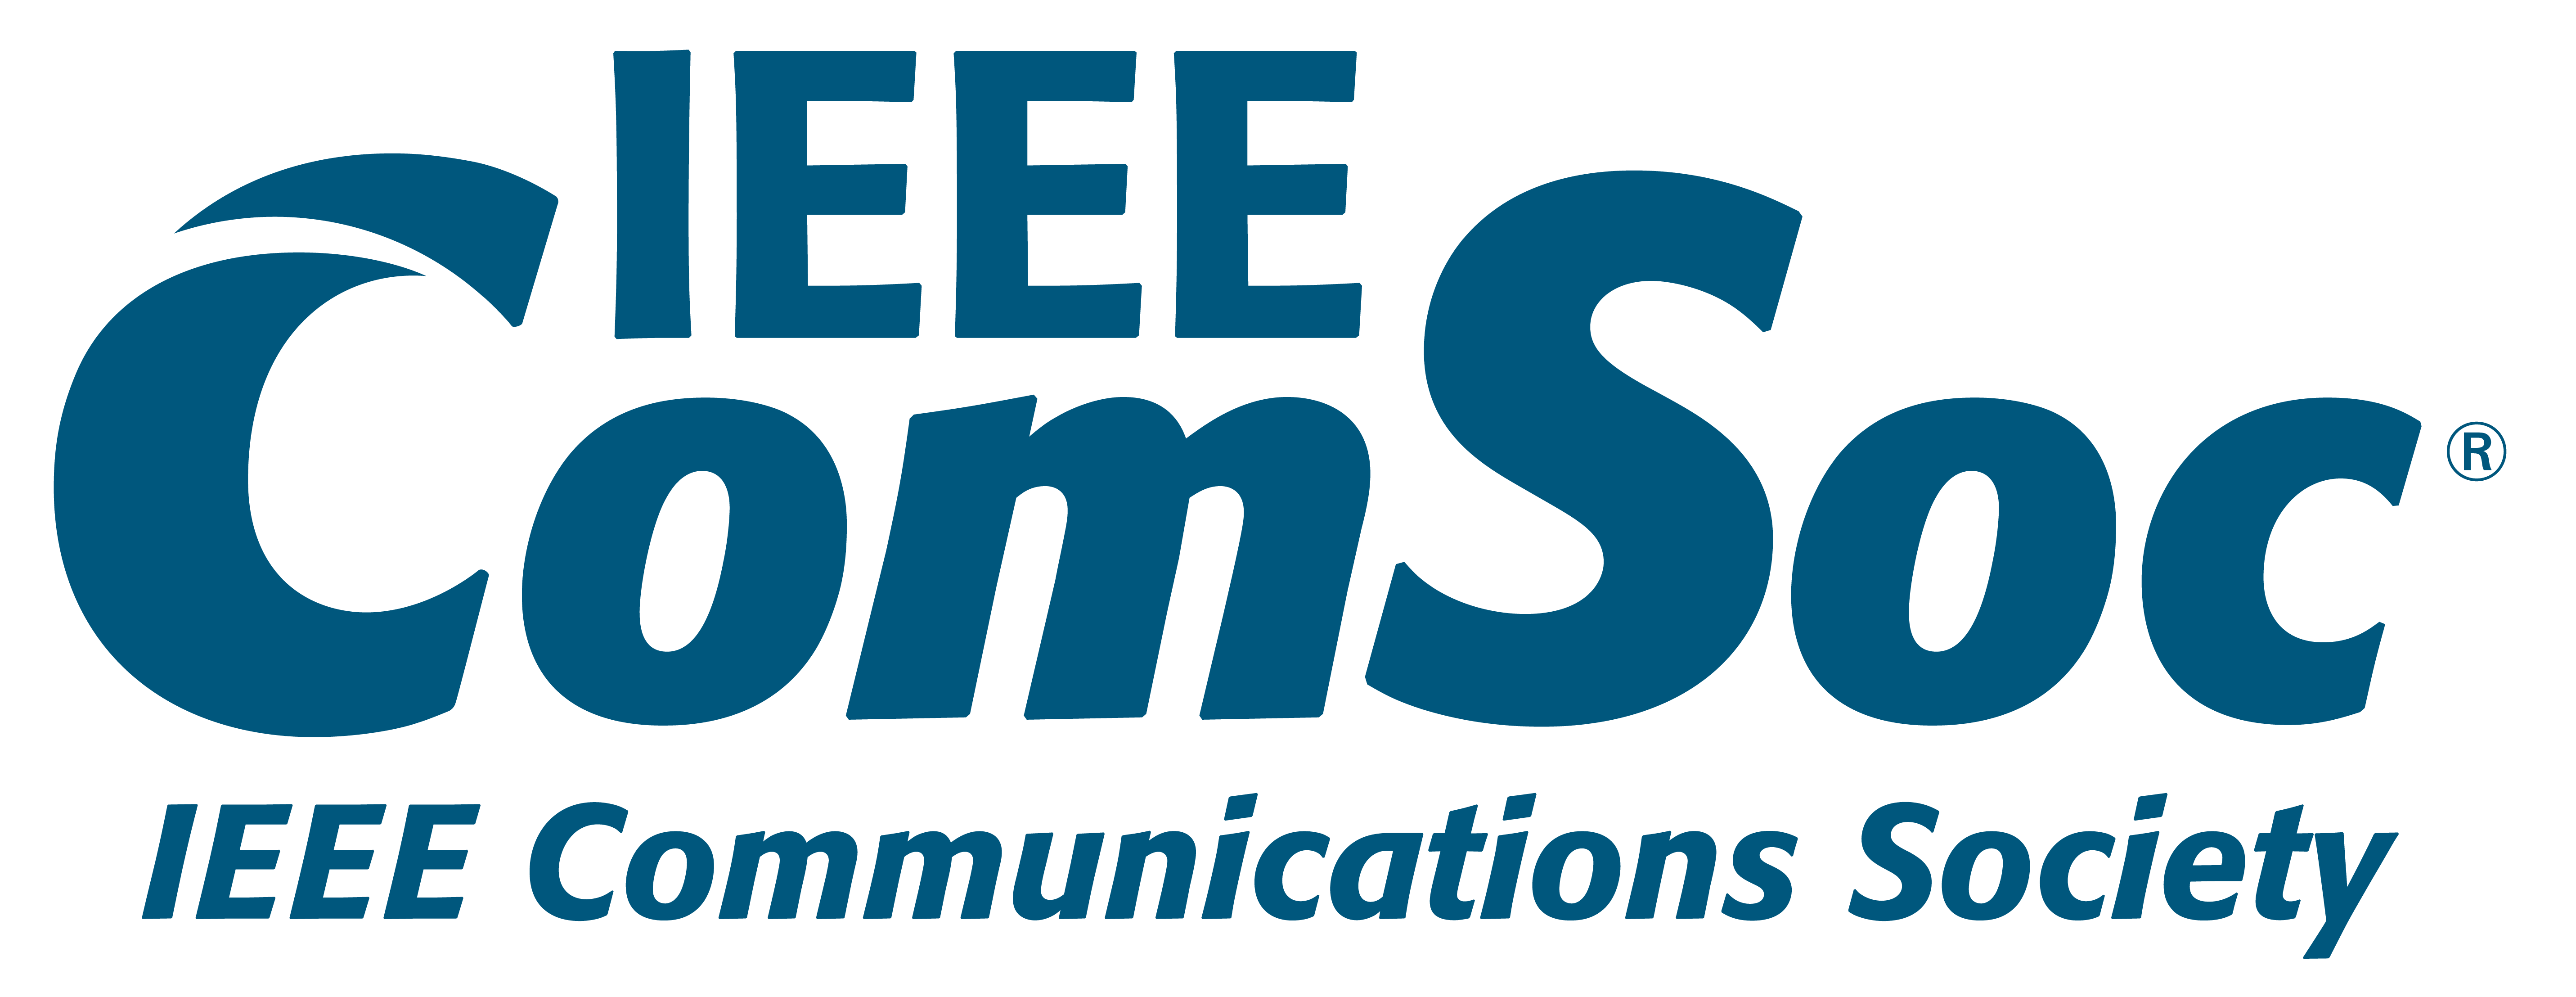 IEEE Communications Society - Serbia & Montenegro Chapter